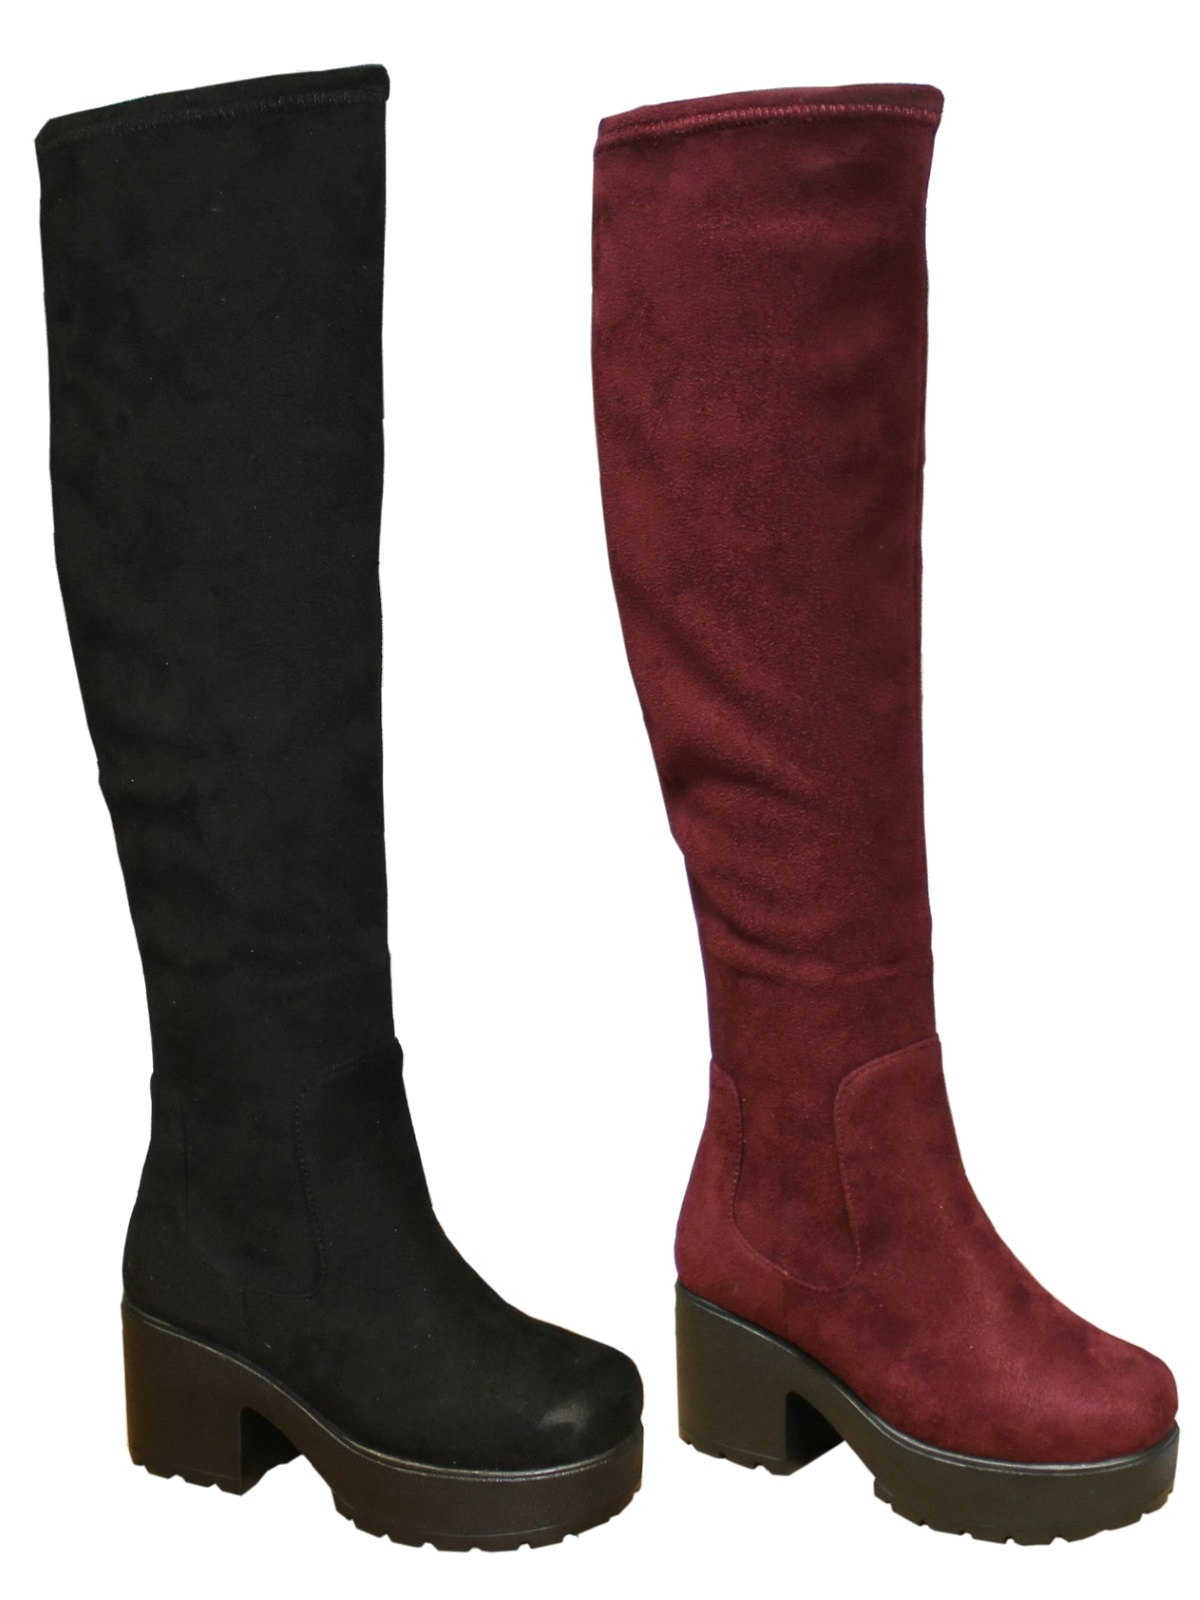 Enjoy free shipping and easy returns every day at Kohl's. Find great deals on Womens Knee High Boots at Kohl's today!